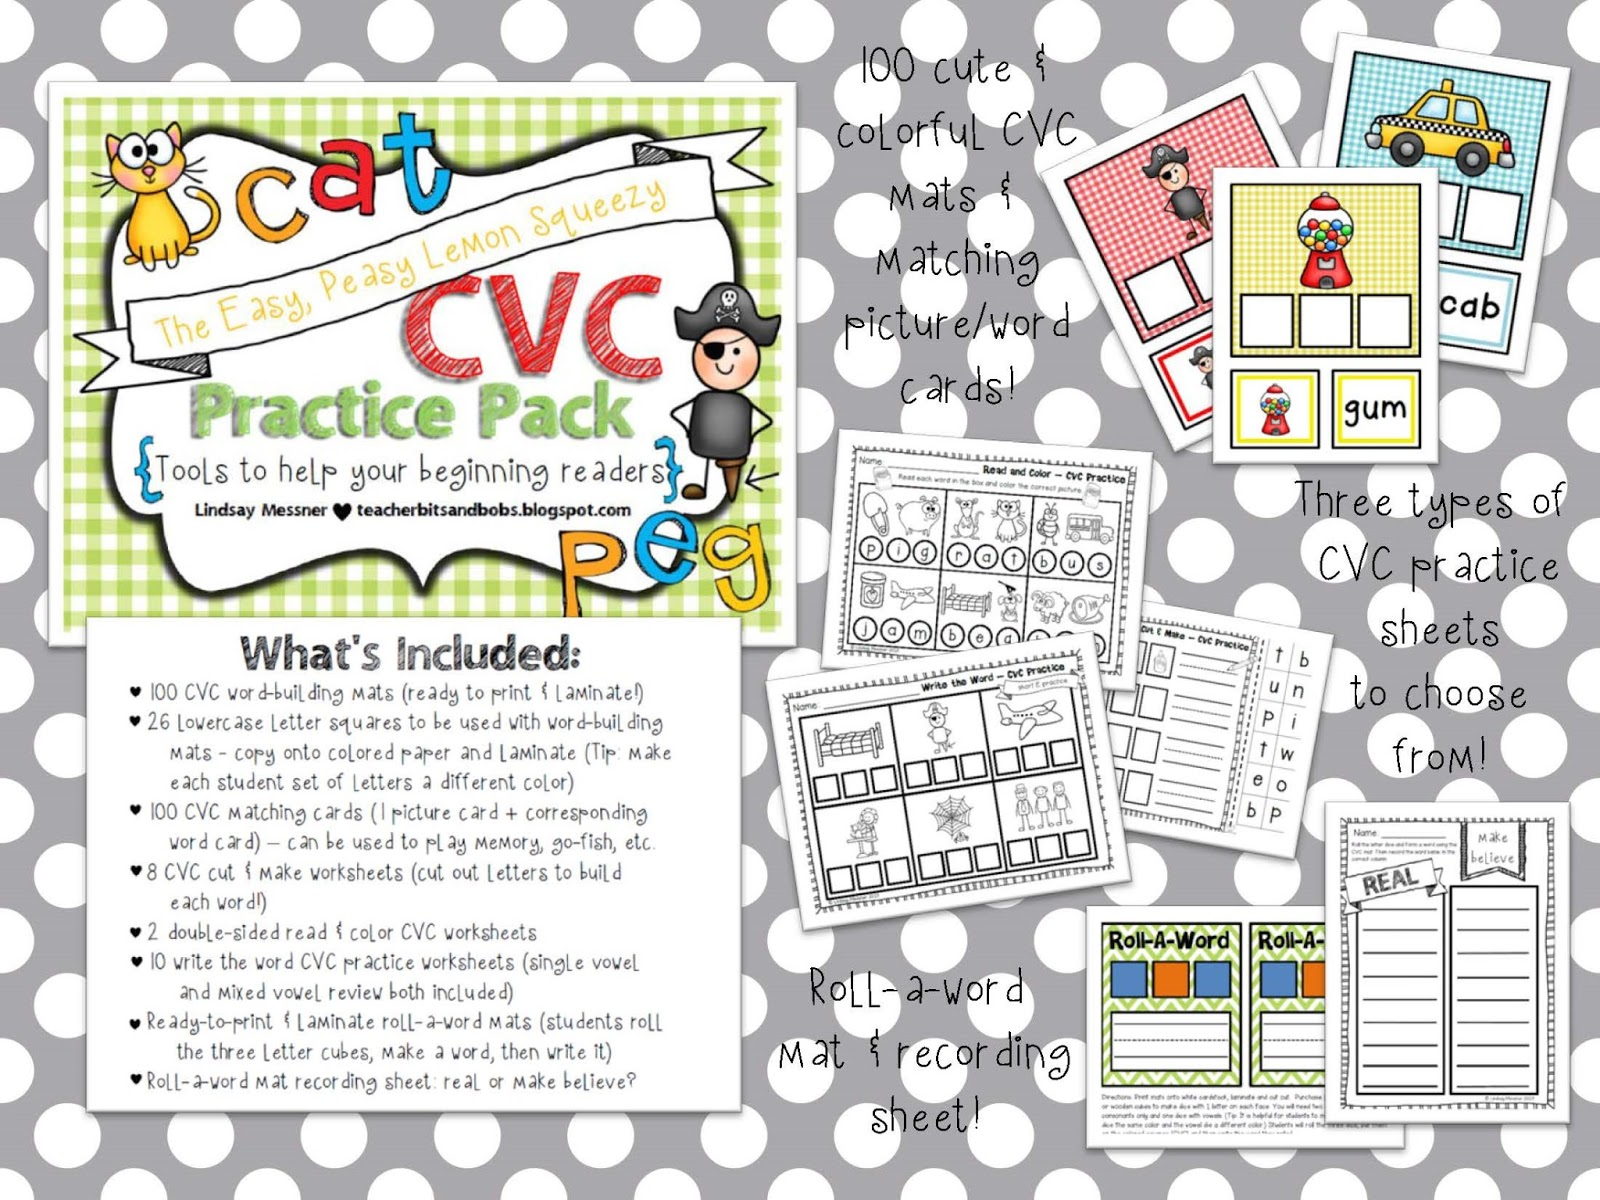 Teacher Bits And Bobs Easy Peasy Lemon Squeezy Cvc Practice Pack And A Random Little